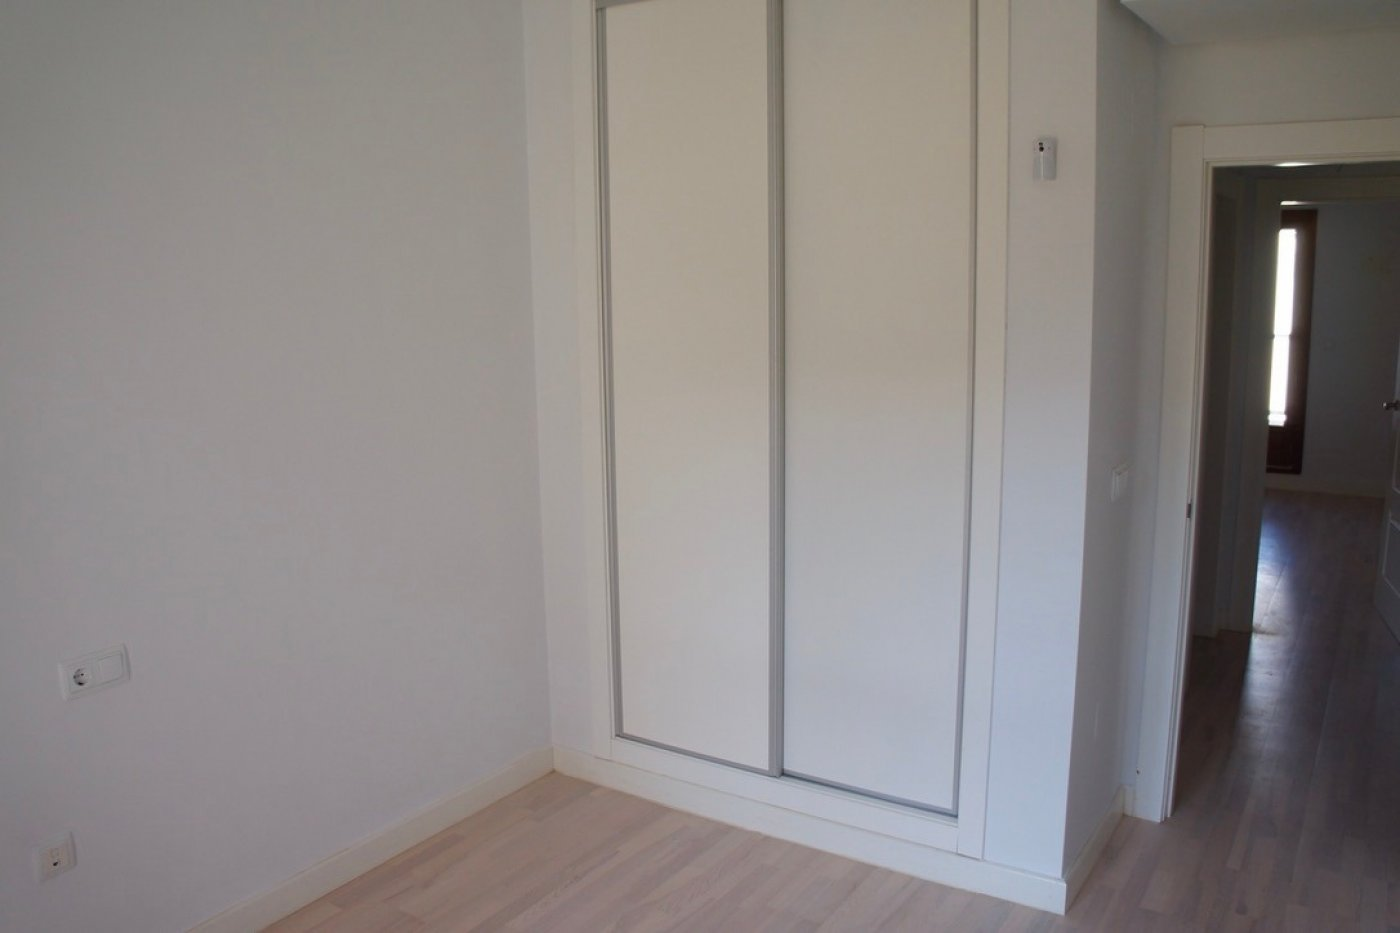 Gallery Image 15 of Nice 2nd  garden flat with views, 2 bed and 2 bath in lovely Golf Resort